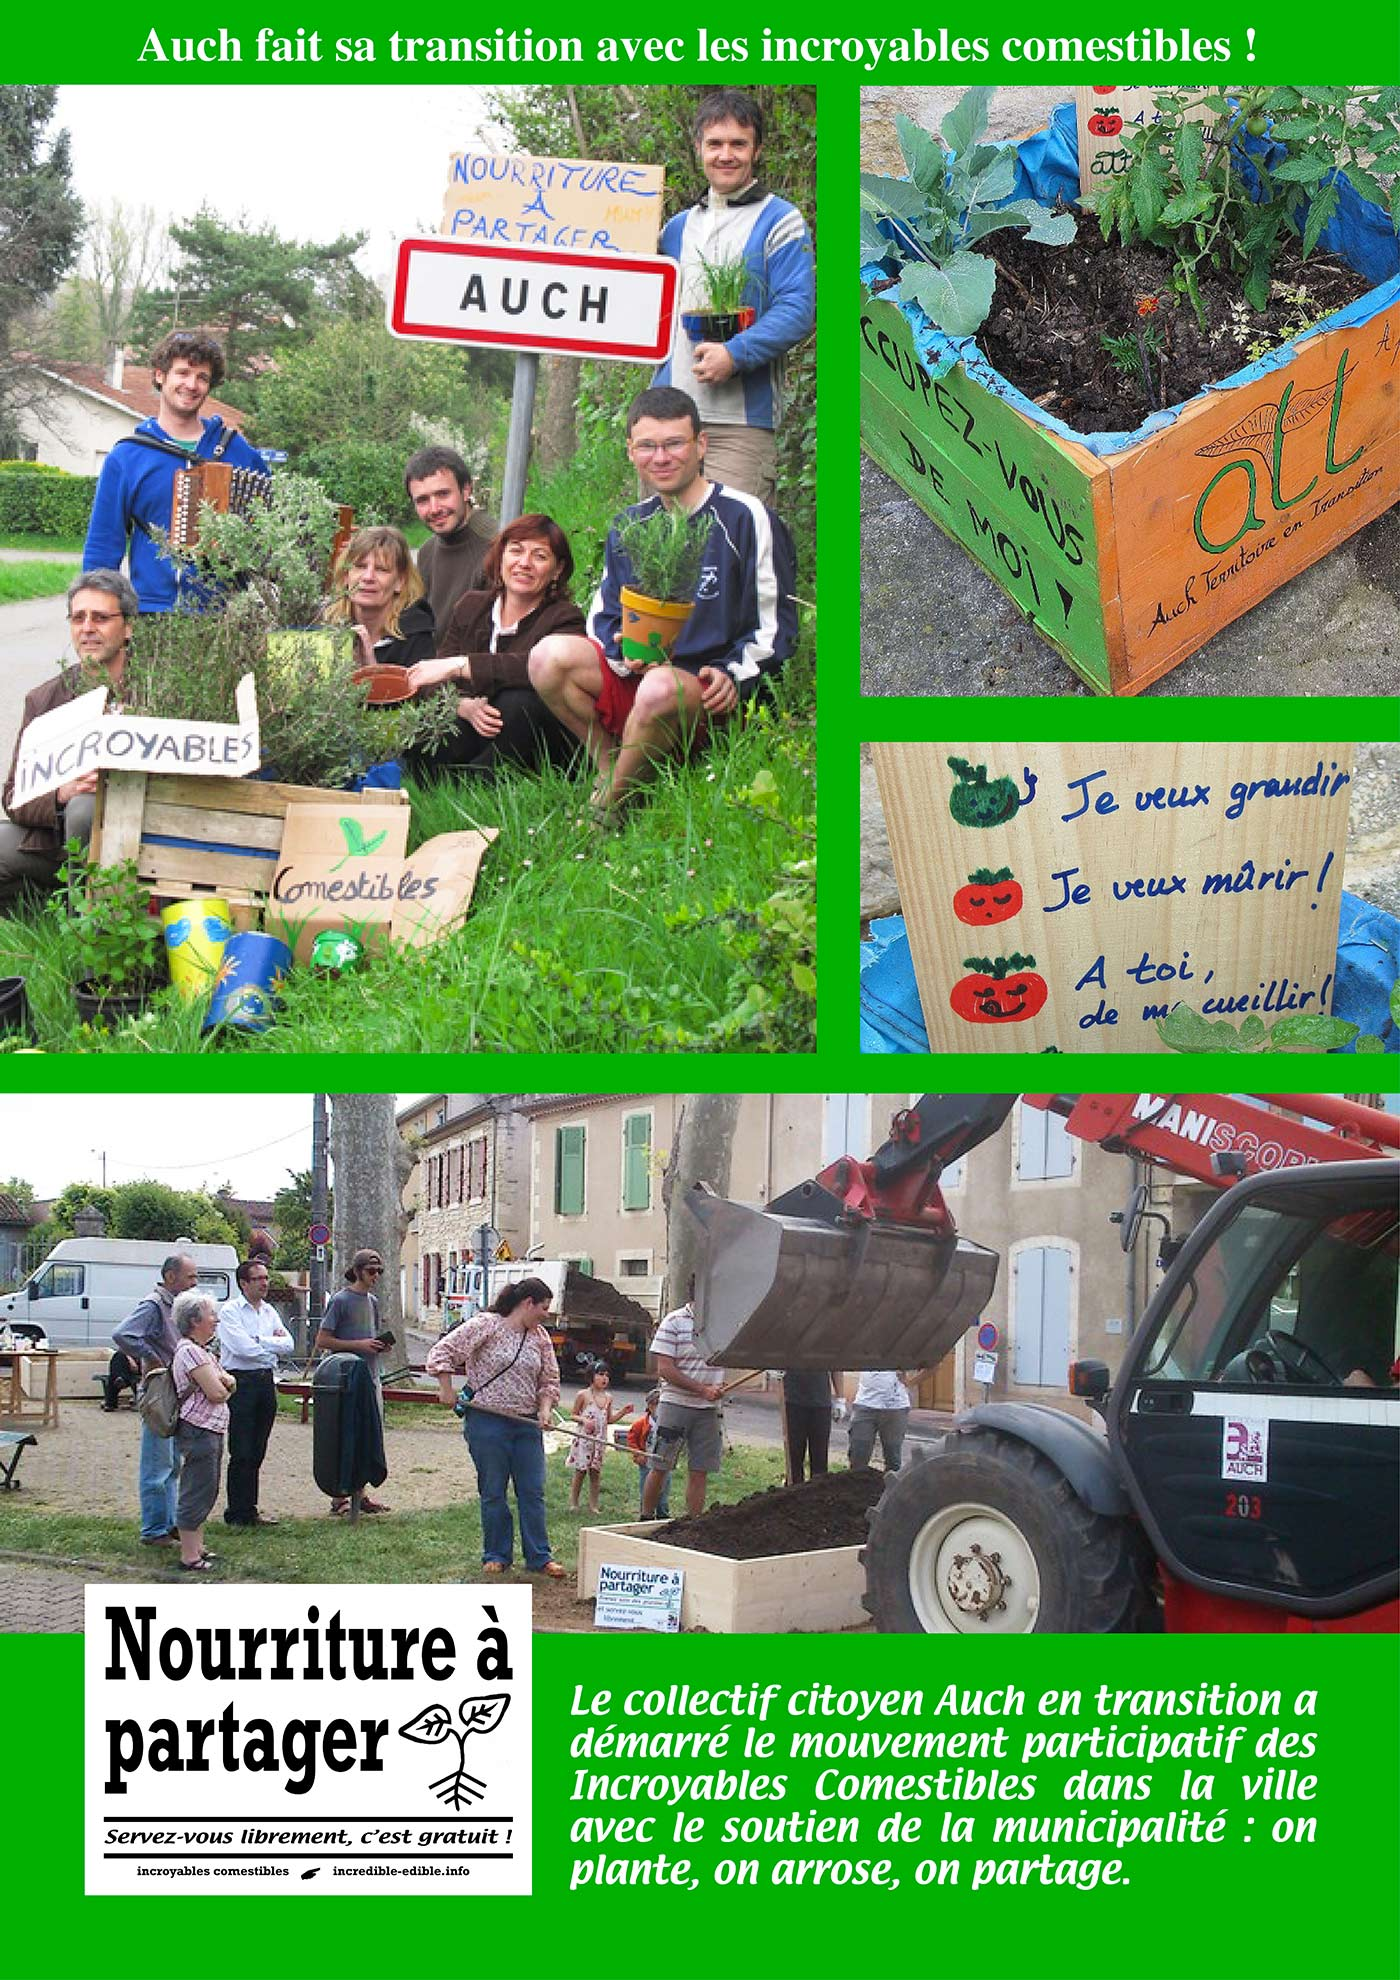 c694_incredible_edible_todmorden_gers_auch_agriculture_urbaine_incroyables_comestibles_w1400